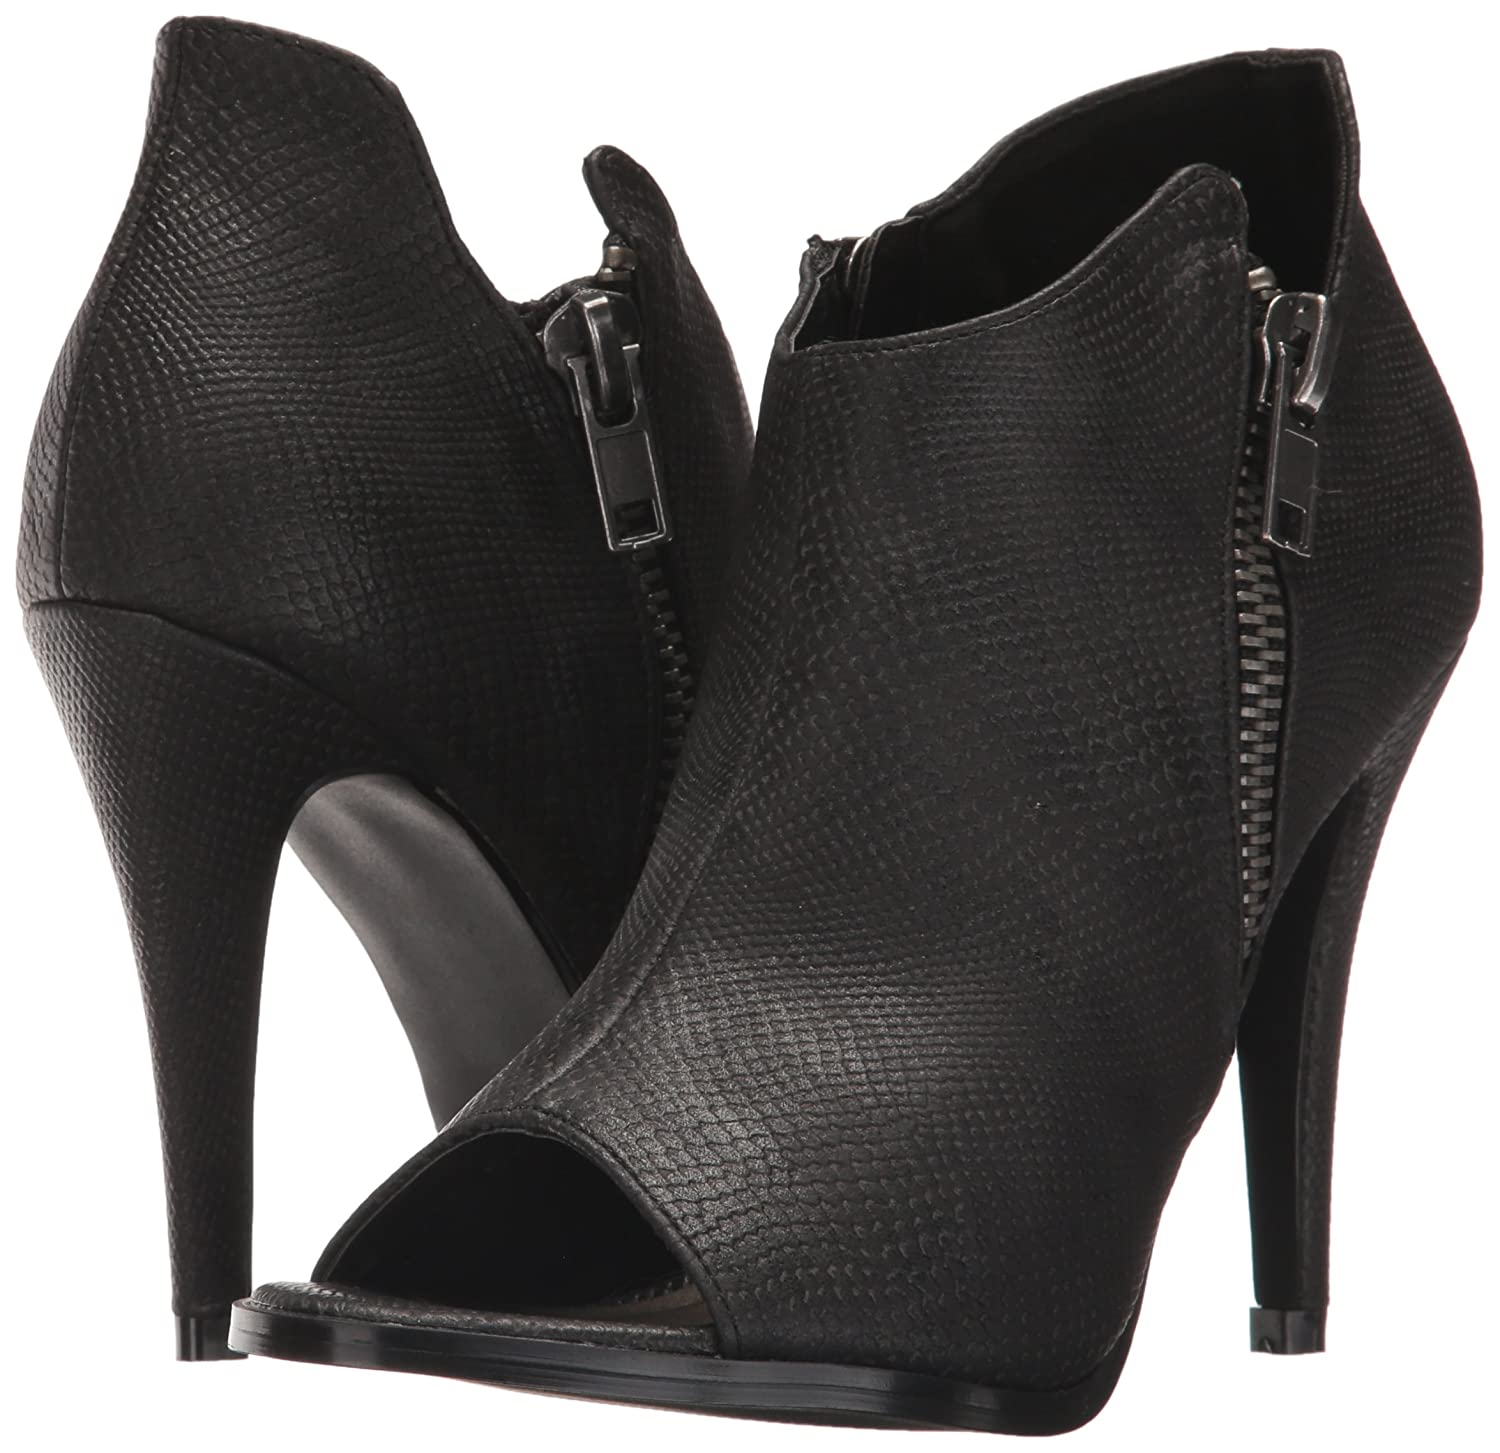 Michael Antonio Women's Lia-Rep Ankle US|Black Bootie B071XN8ZP1 7 W US|Black Ankle 973f0b